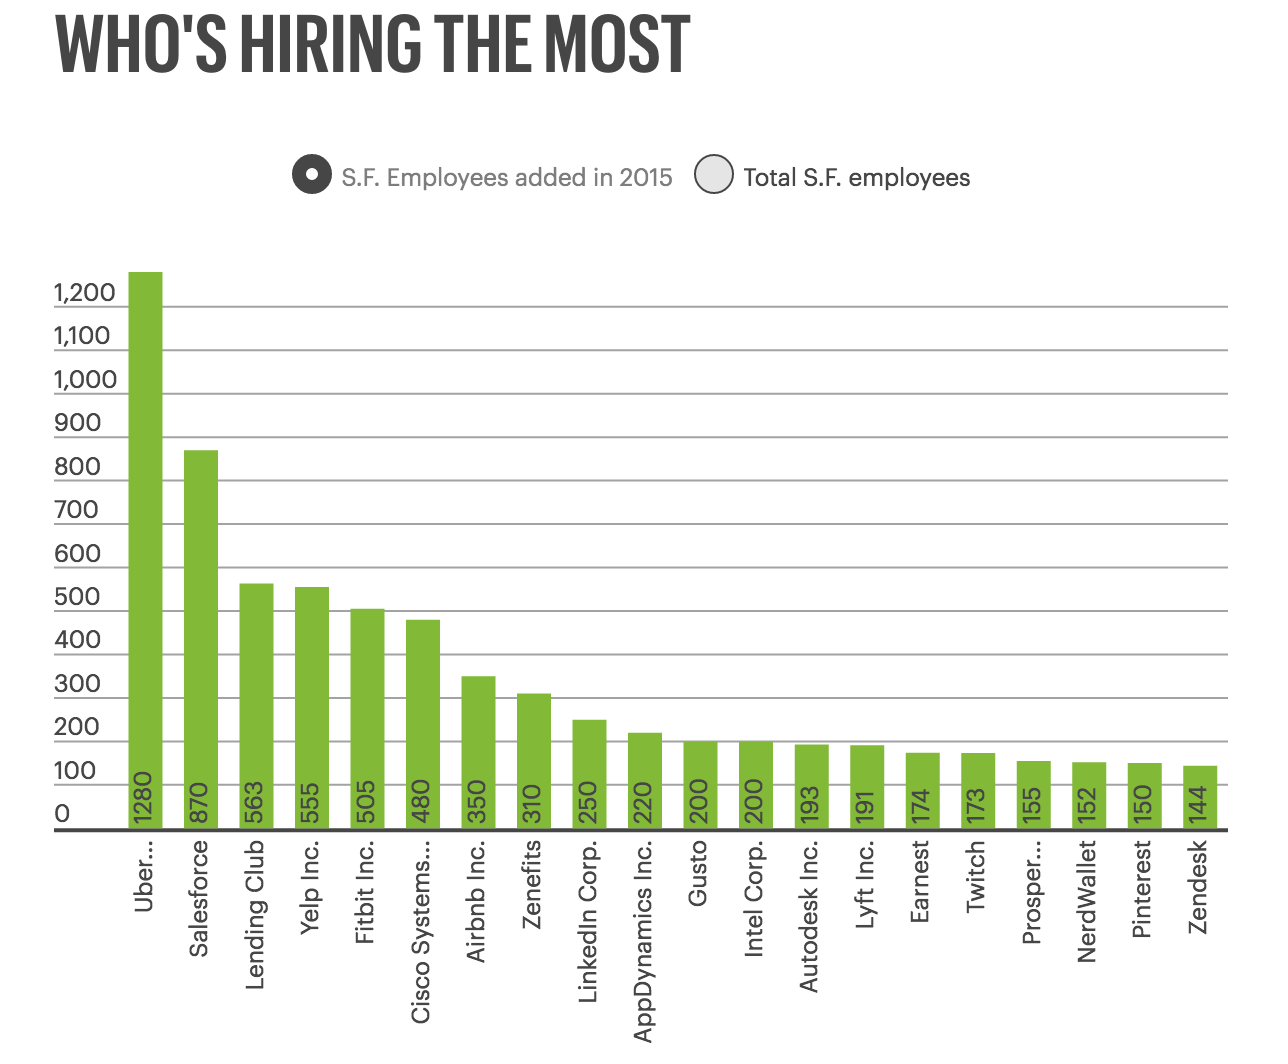 How high is Uber's hiring bar for software engineers in 2015? - Quora